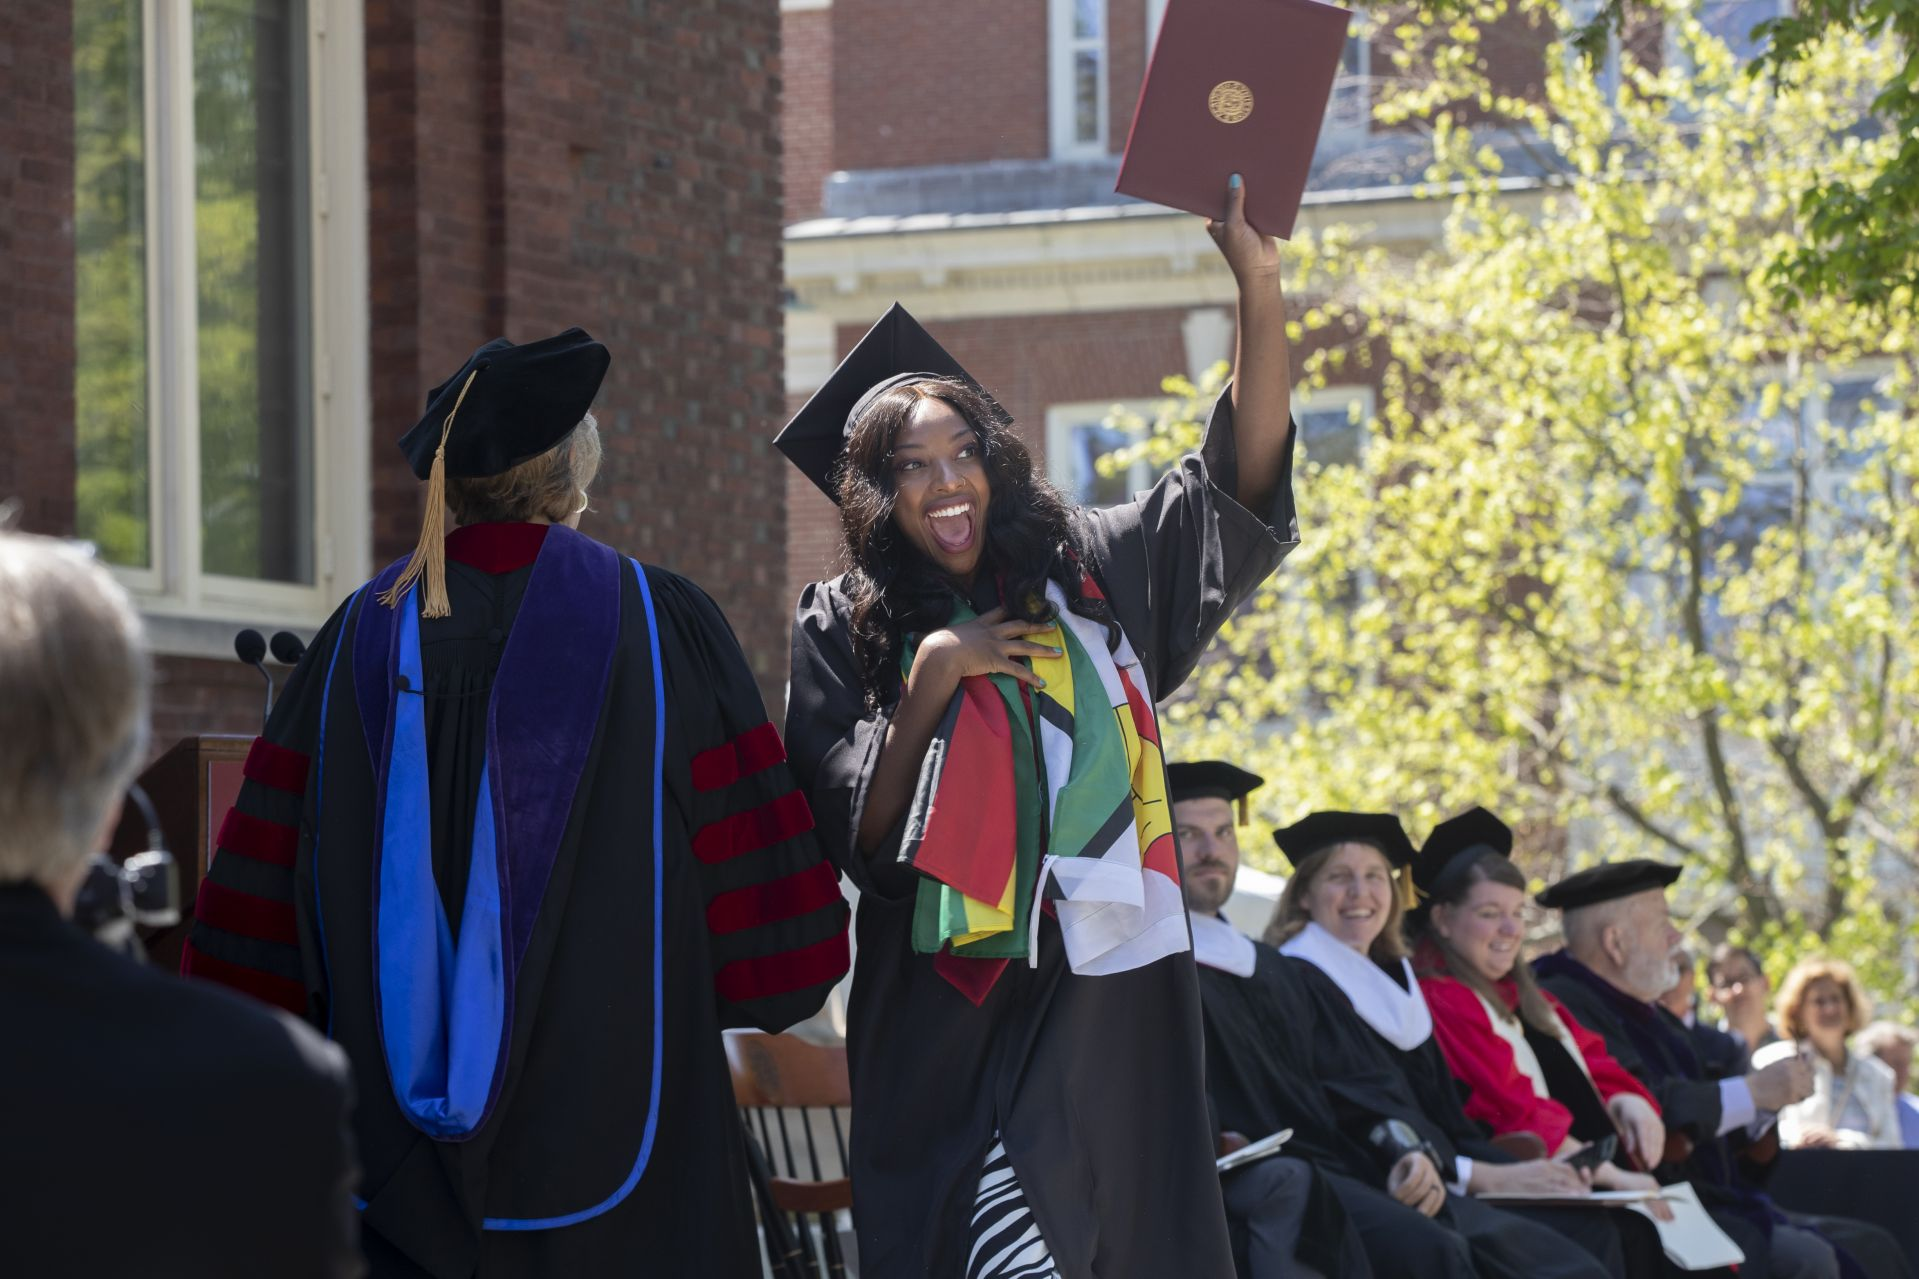 Kudzaiishe Irene Mapfunde, a psychology major, displays her diploma exuberantly. (Phyllis Graber Jensen/Bates College)